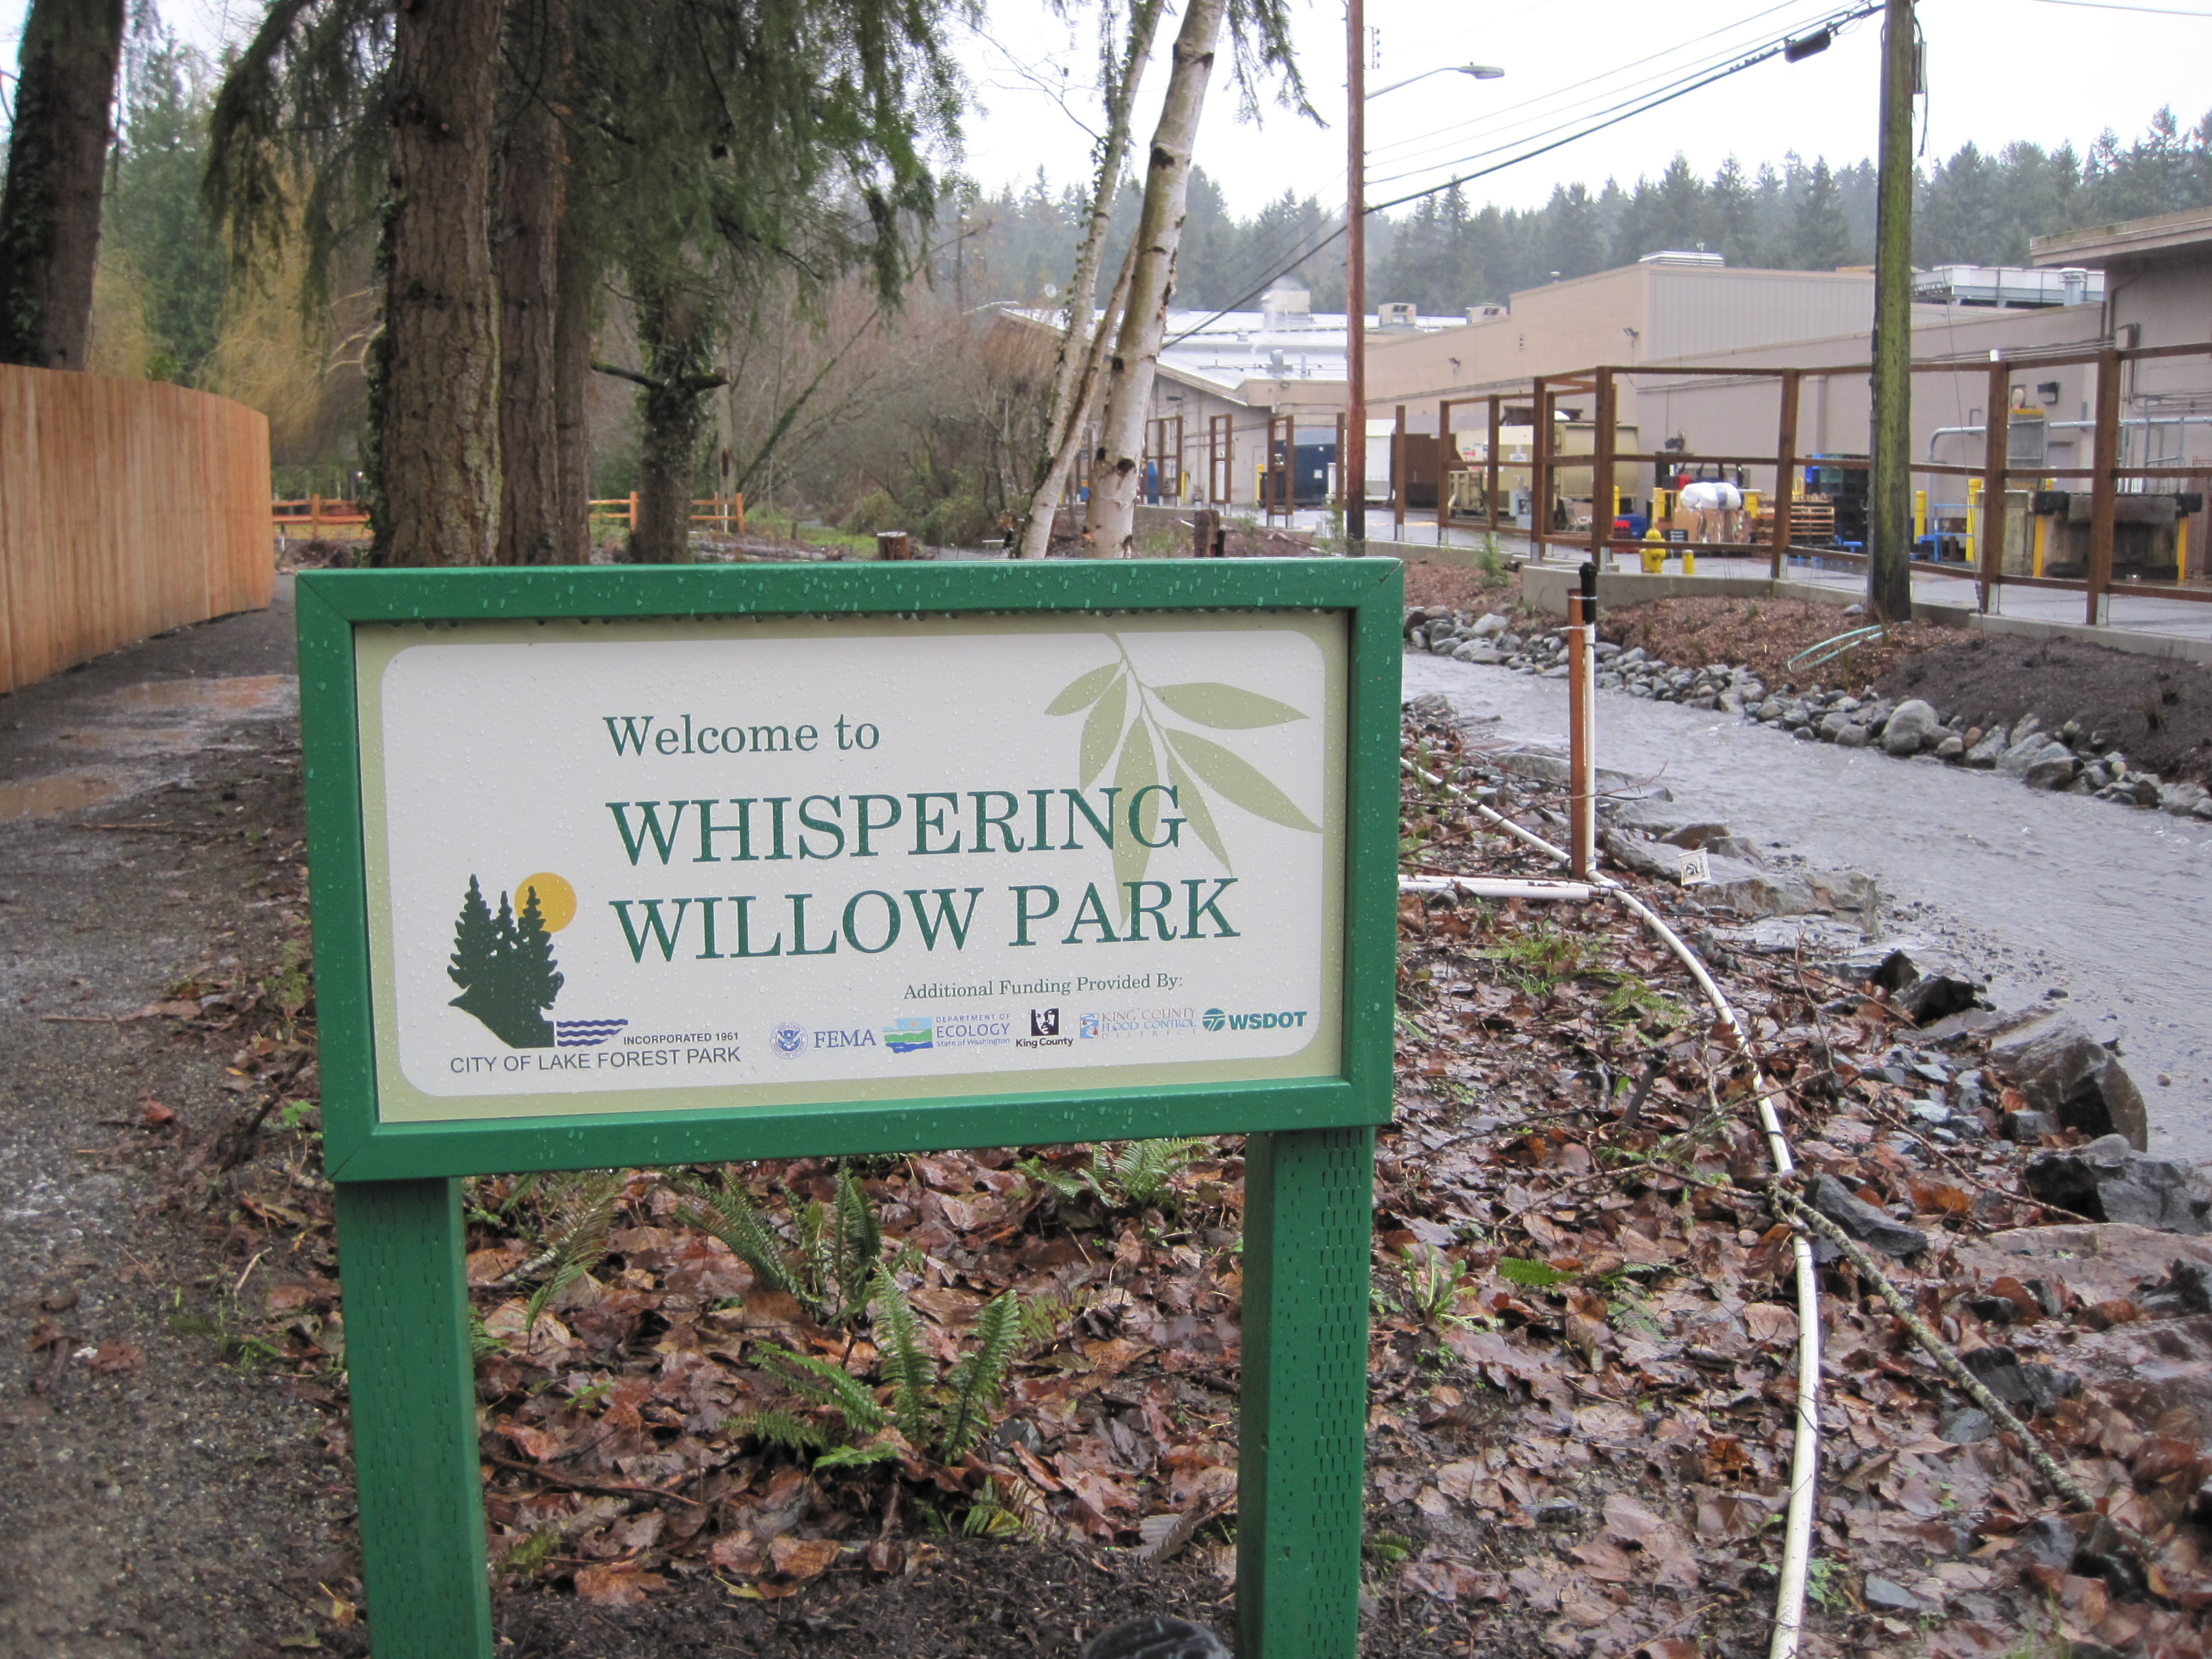 Whispering Willow Park